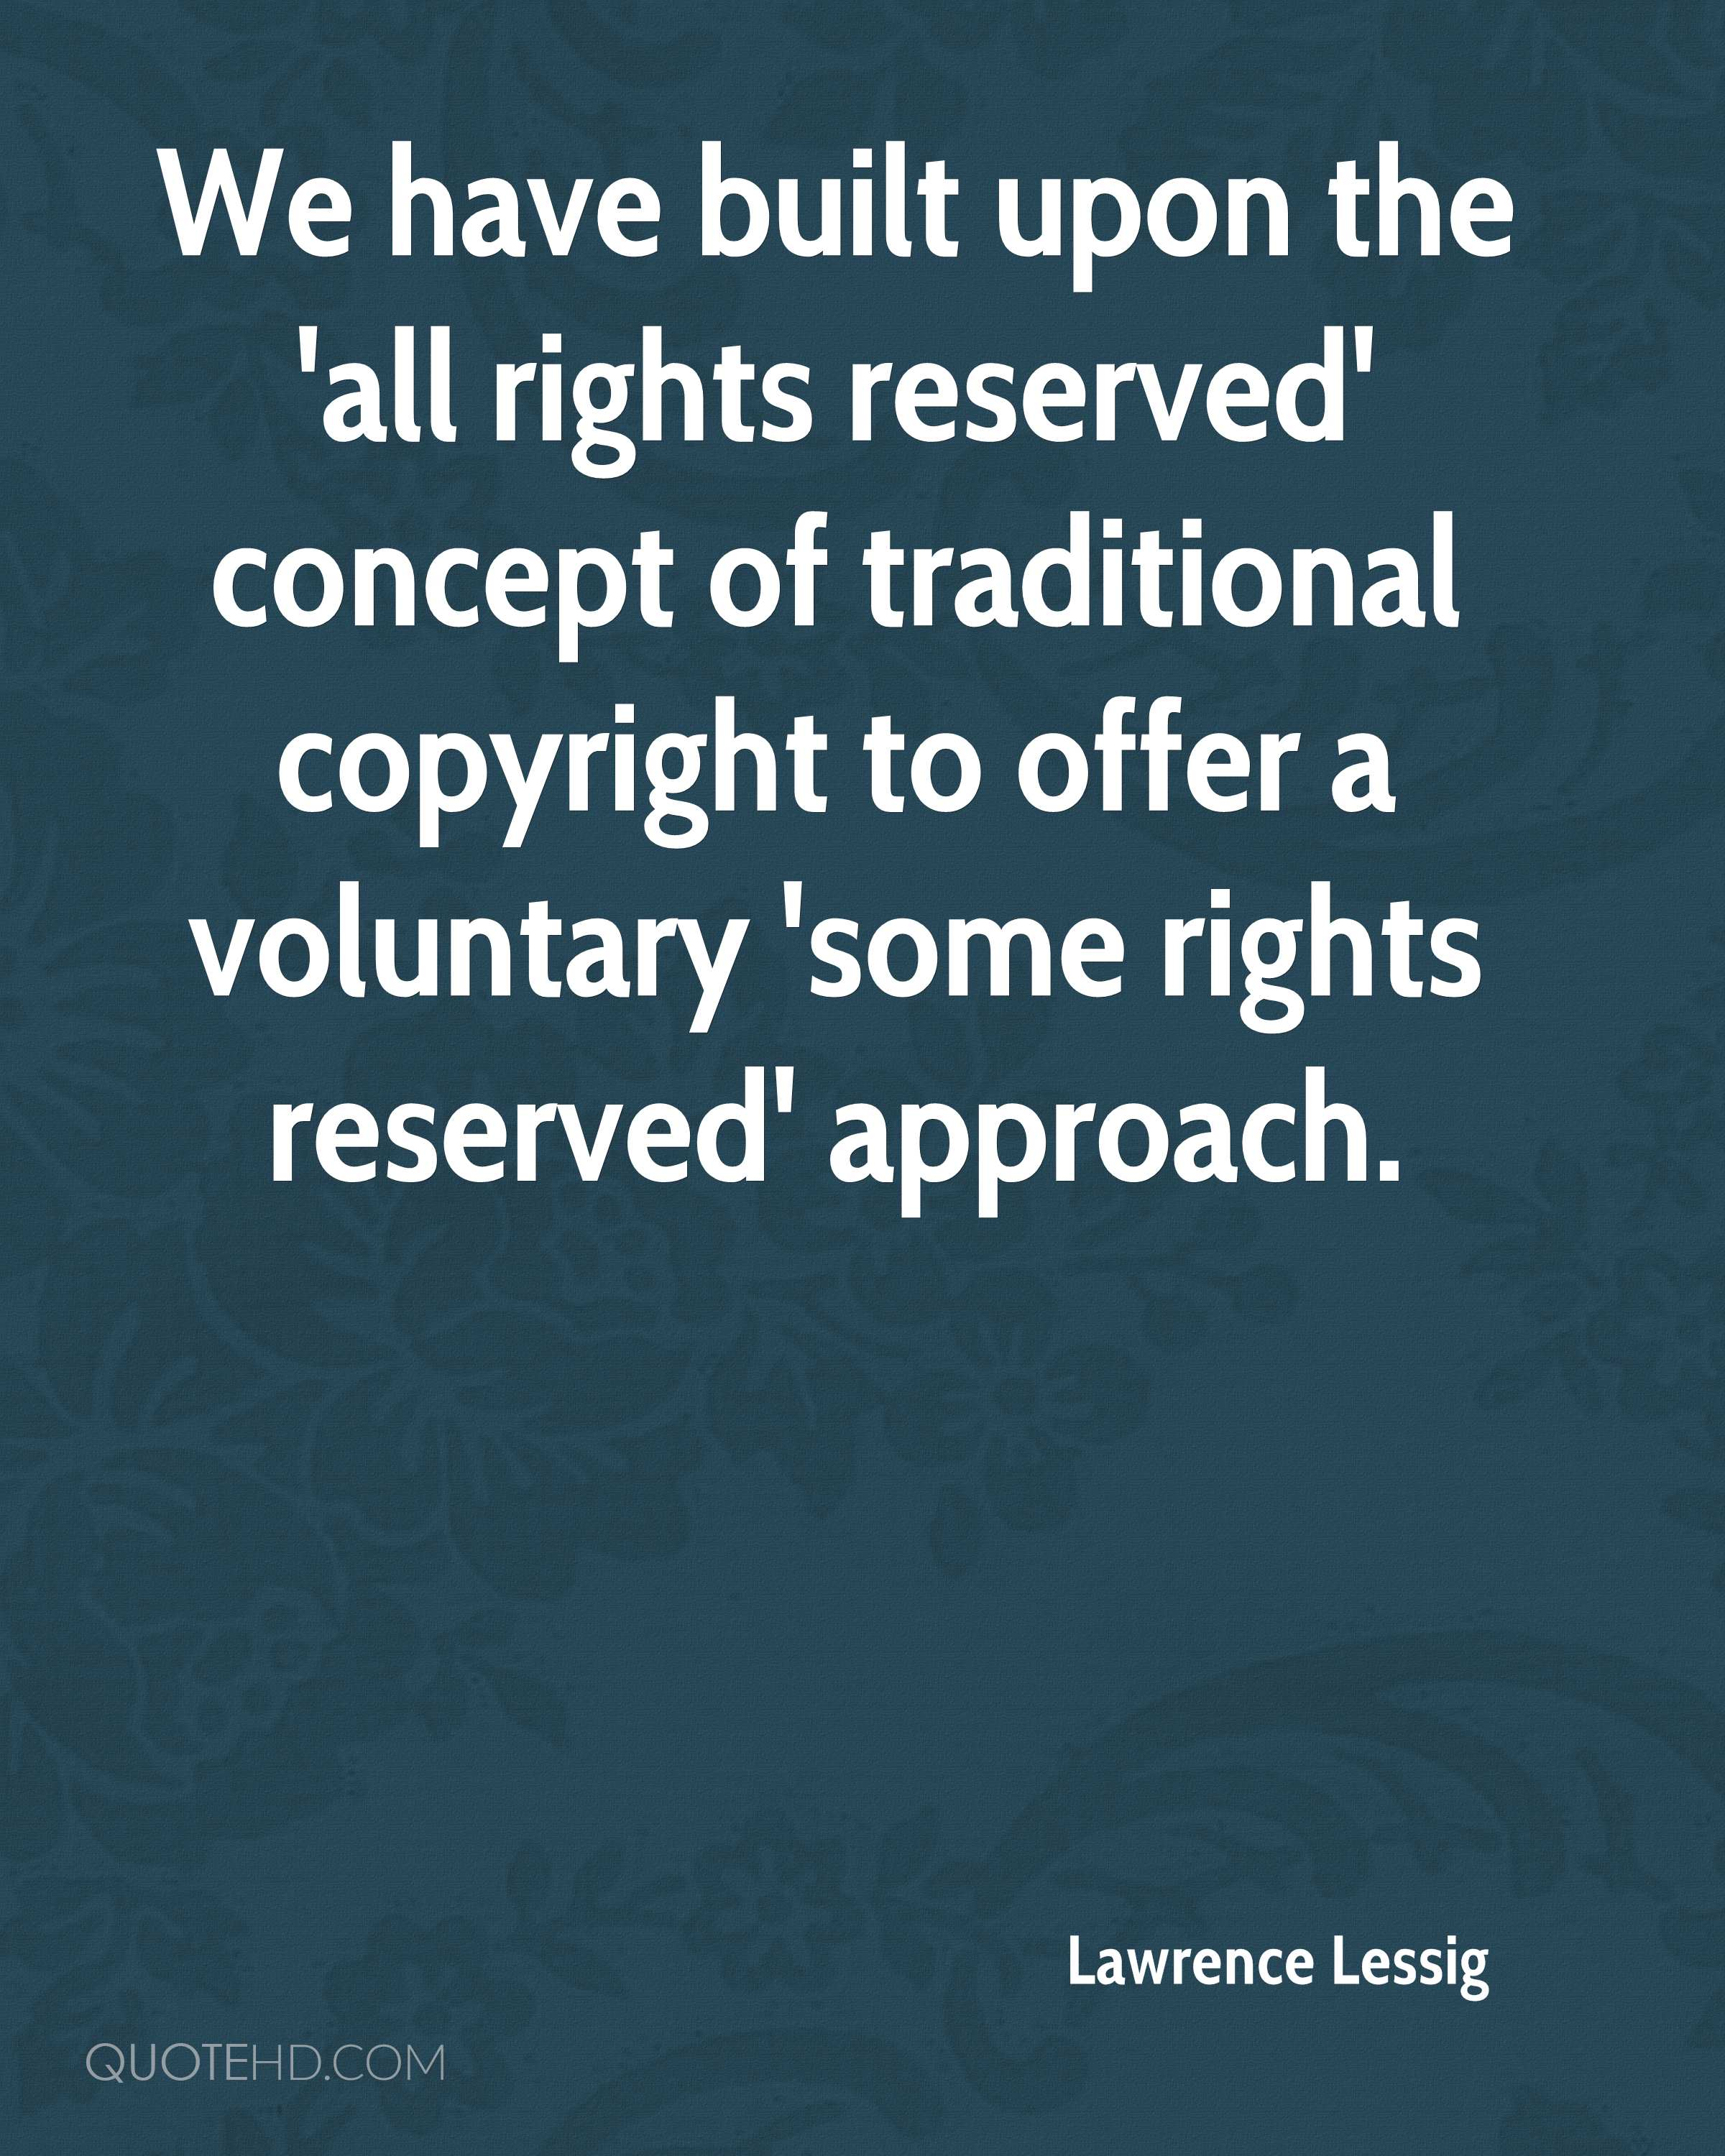 We have built upon the 'all rights reserved' concept of traditional copyright to offer a voluntary 'some rights reserved' approach.